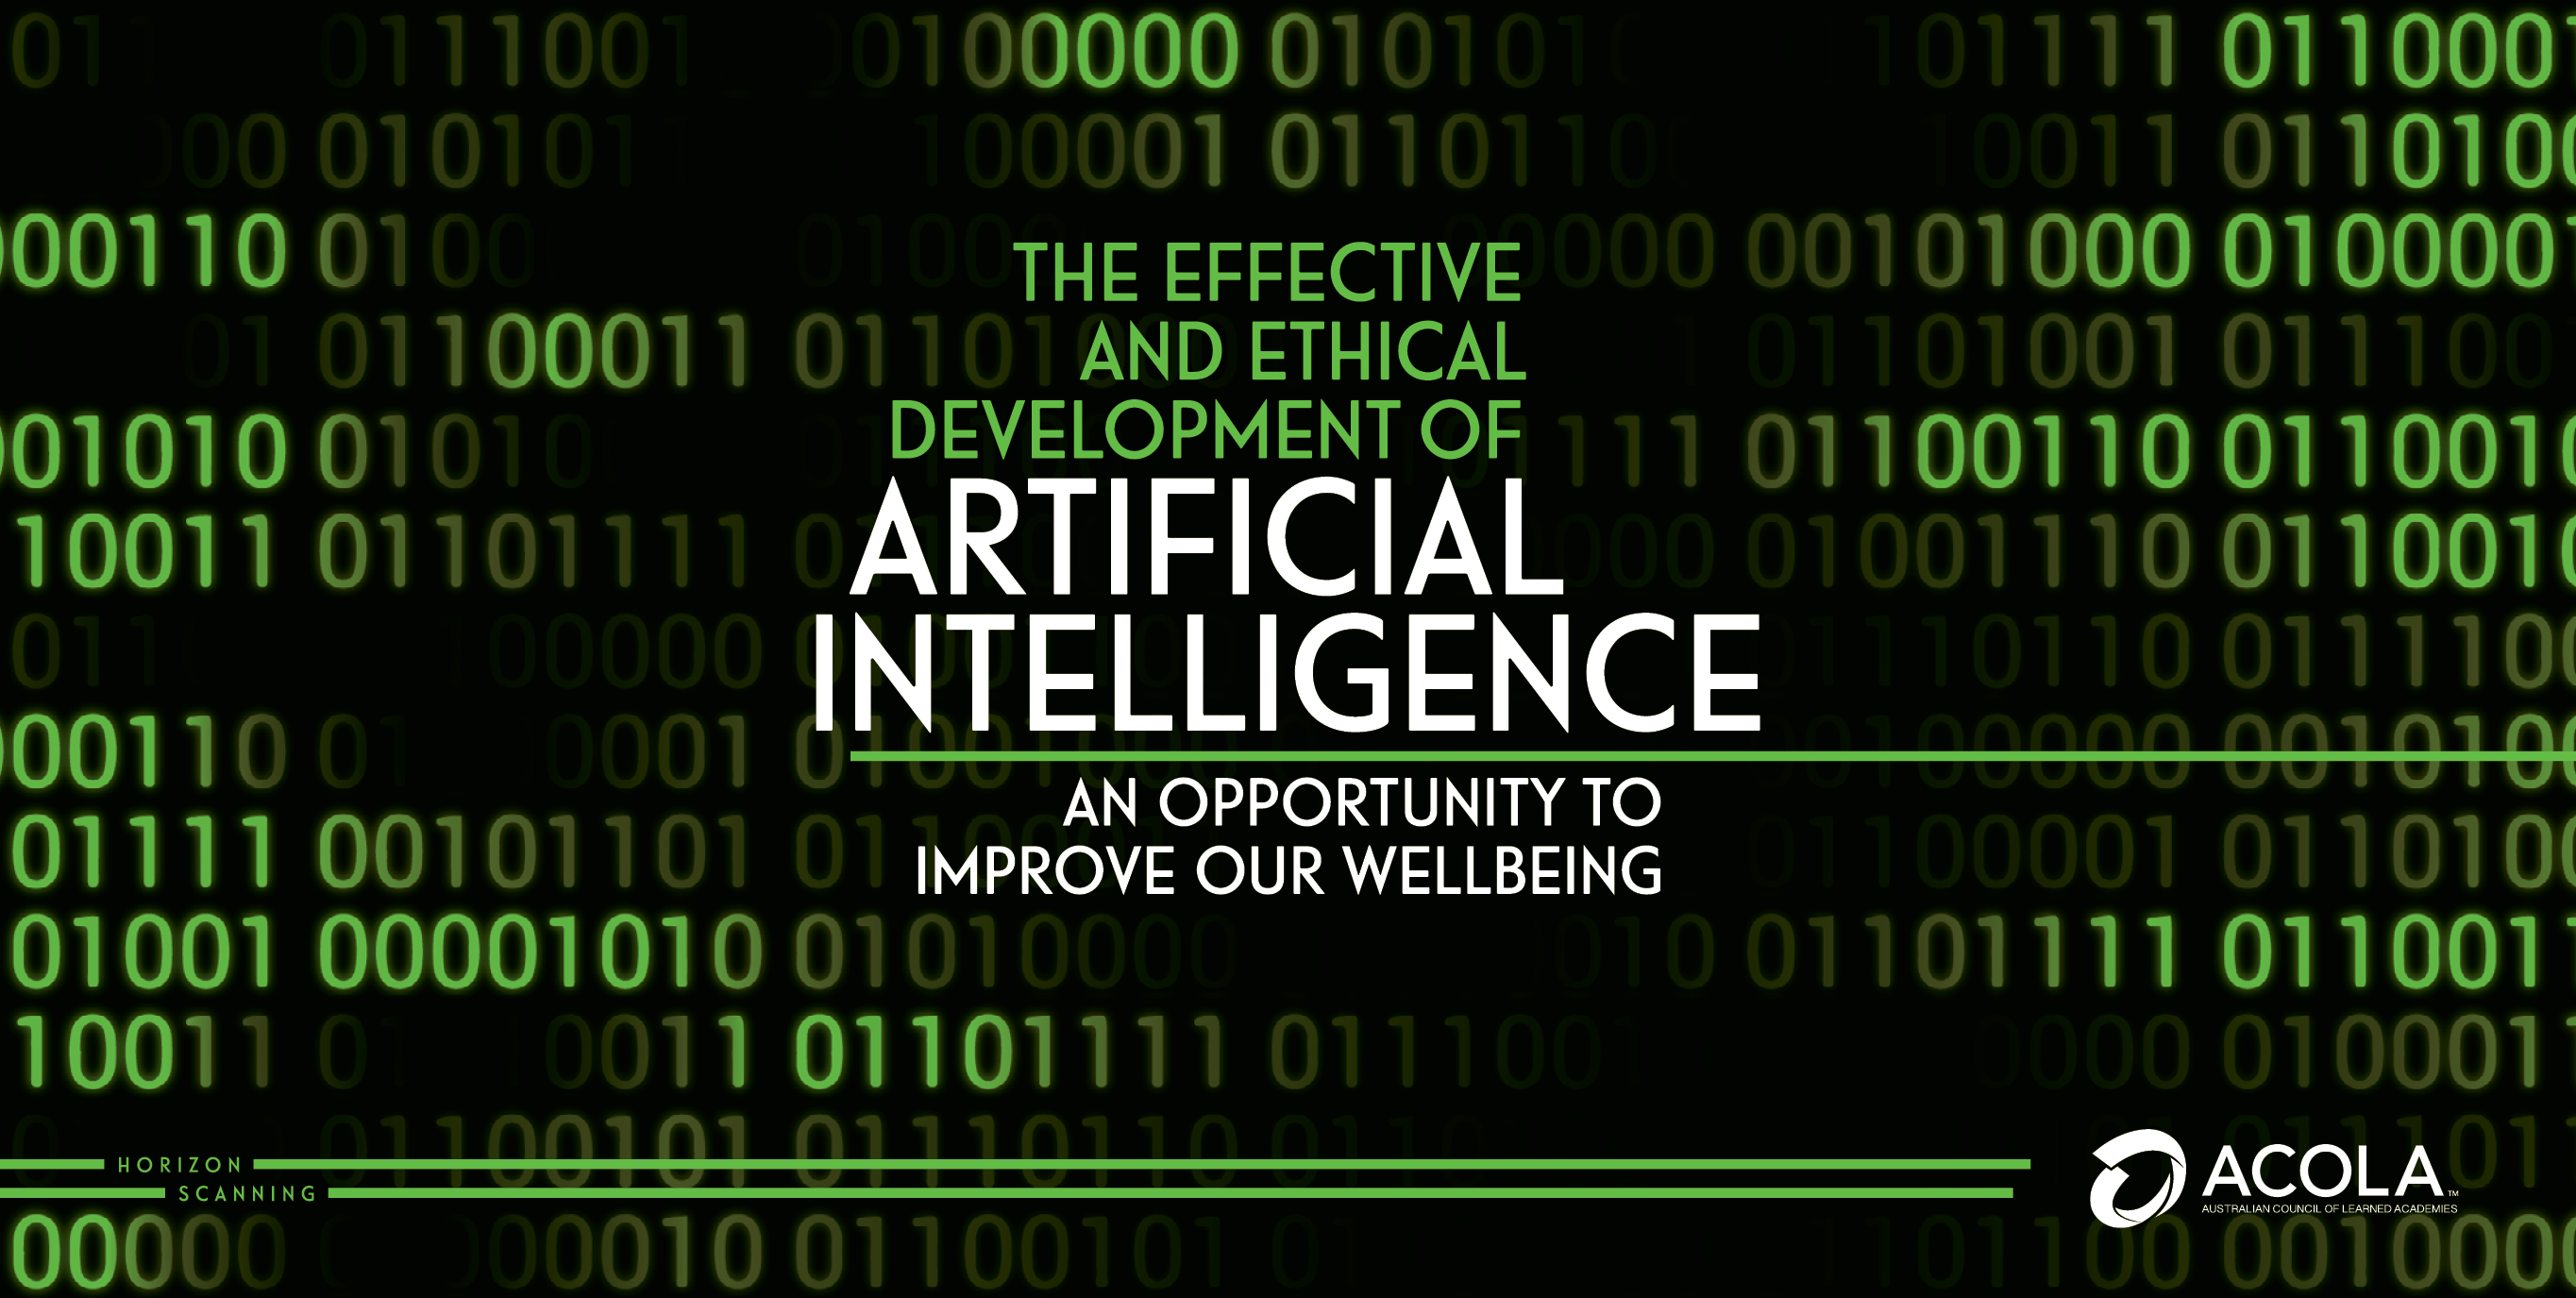 ACOLA Horizon Scanning: Artificial Intelligence report cover